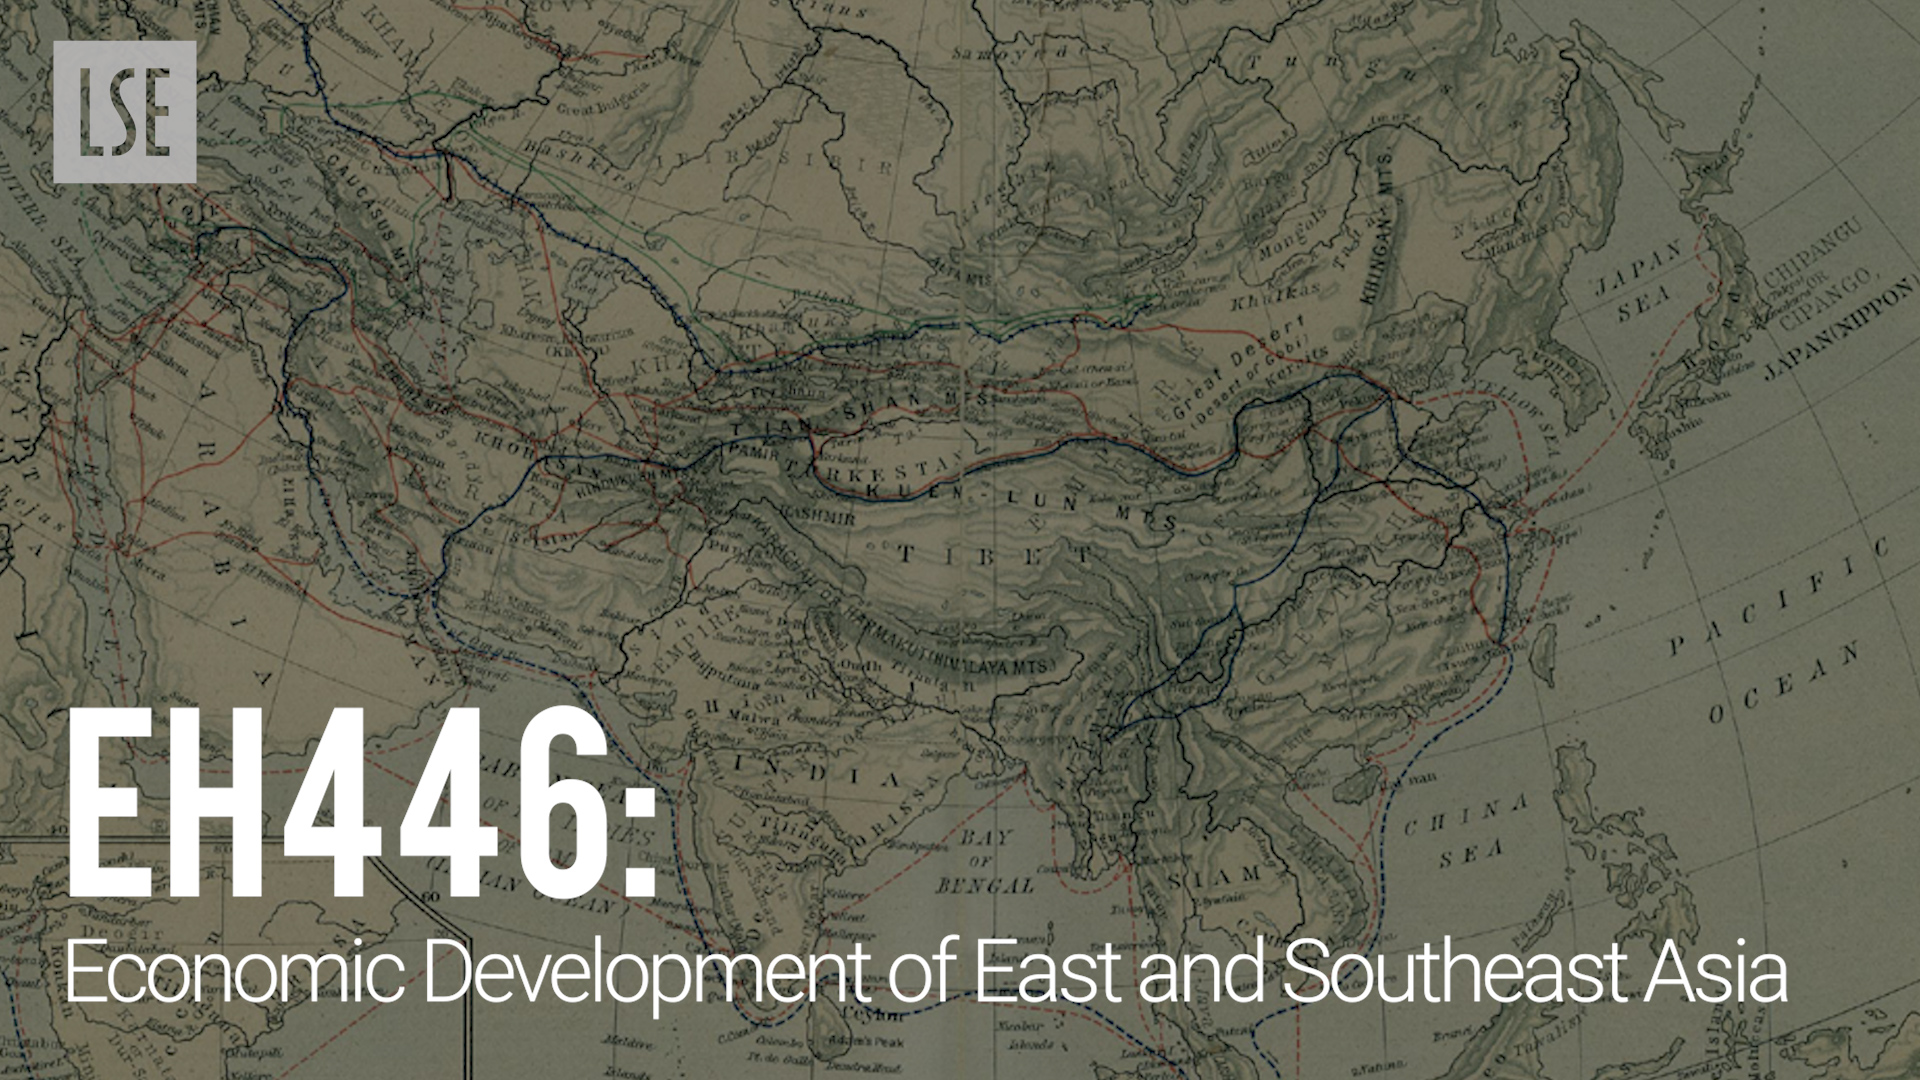 EH446 Economic Development of East and Southeast Asia